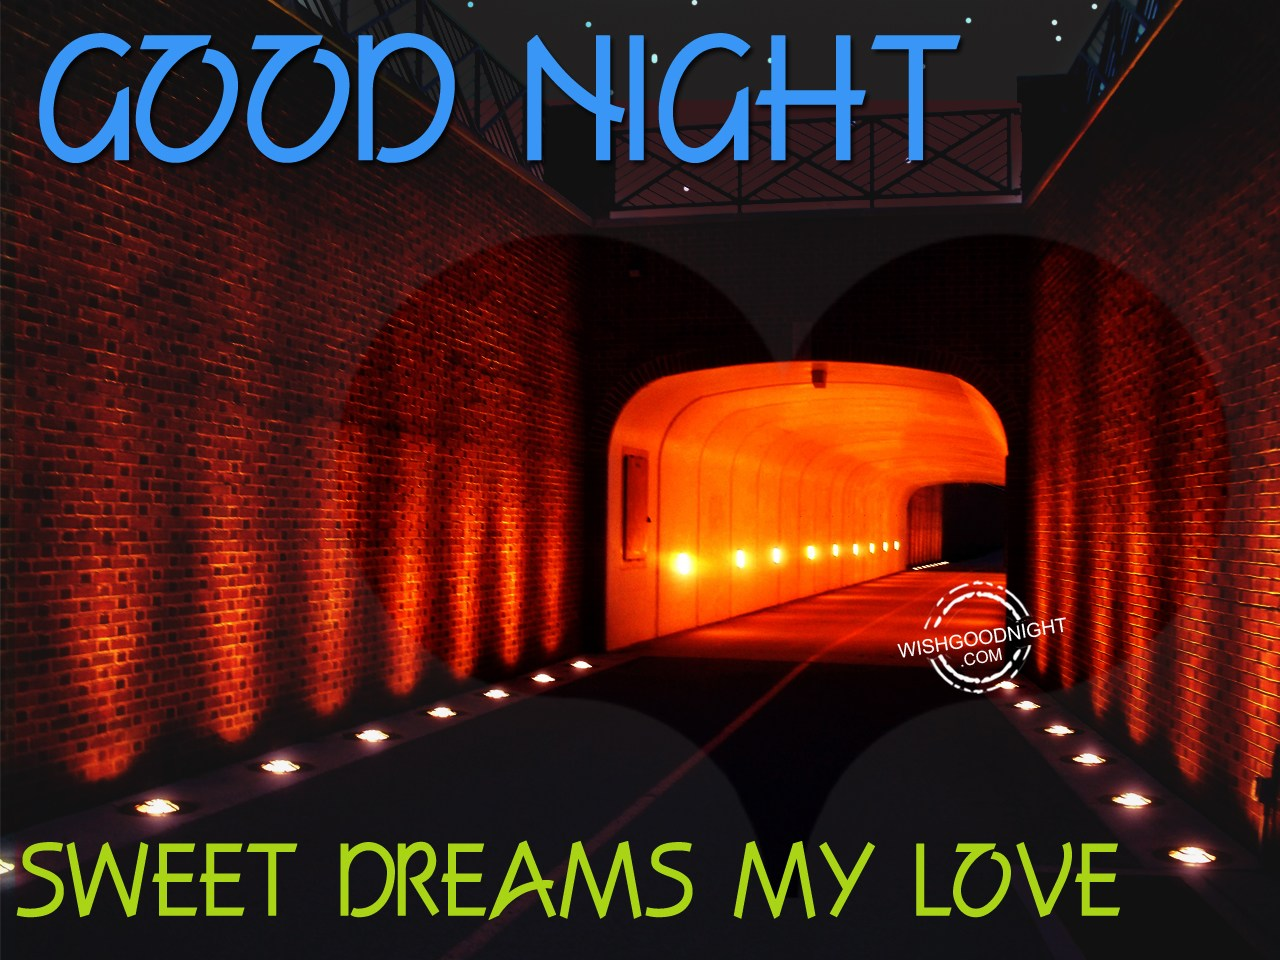 Sweet Dreams My Love - Good Night Pictures – WishGoodNight.com Goodnight Sweet Dreams My Love